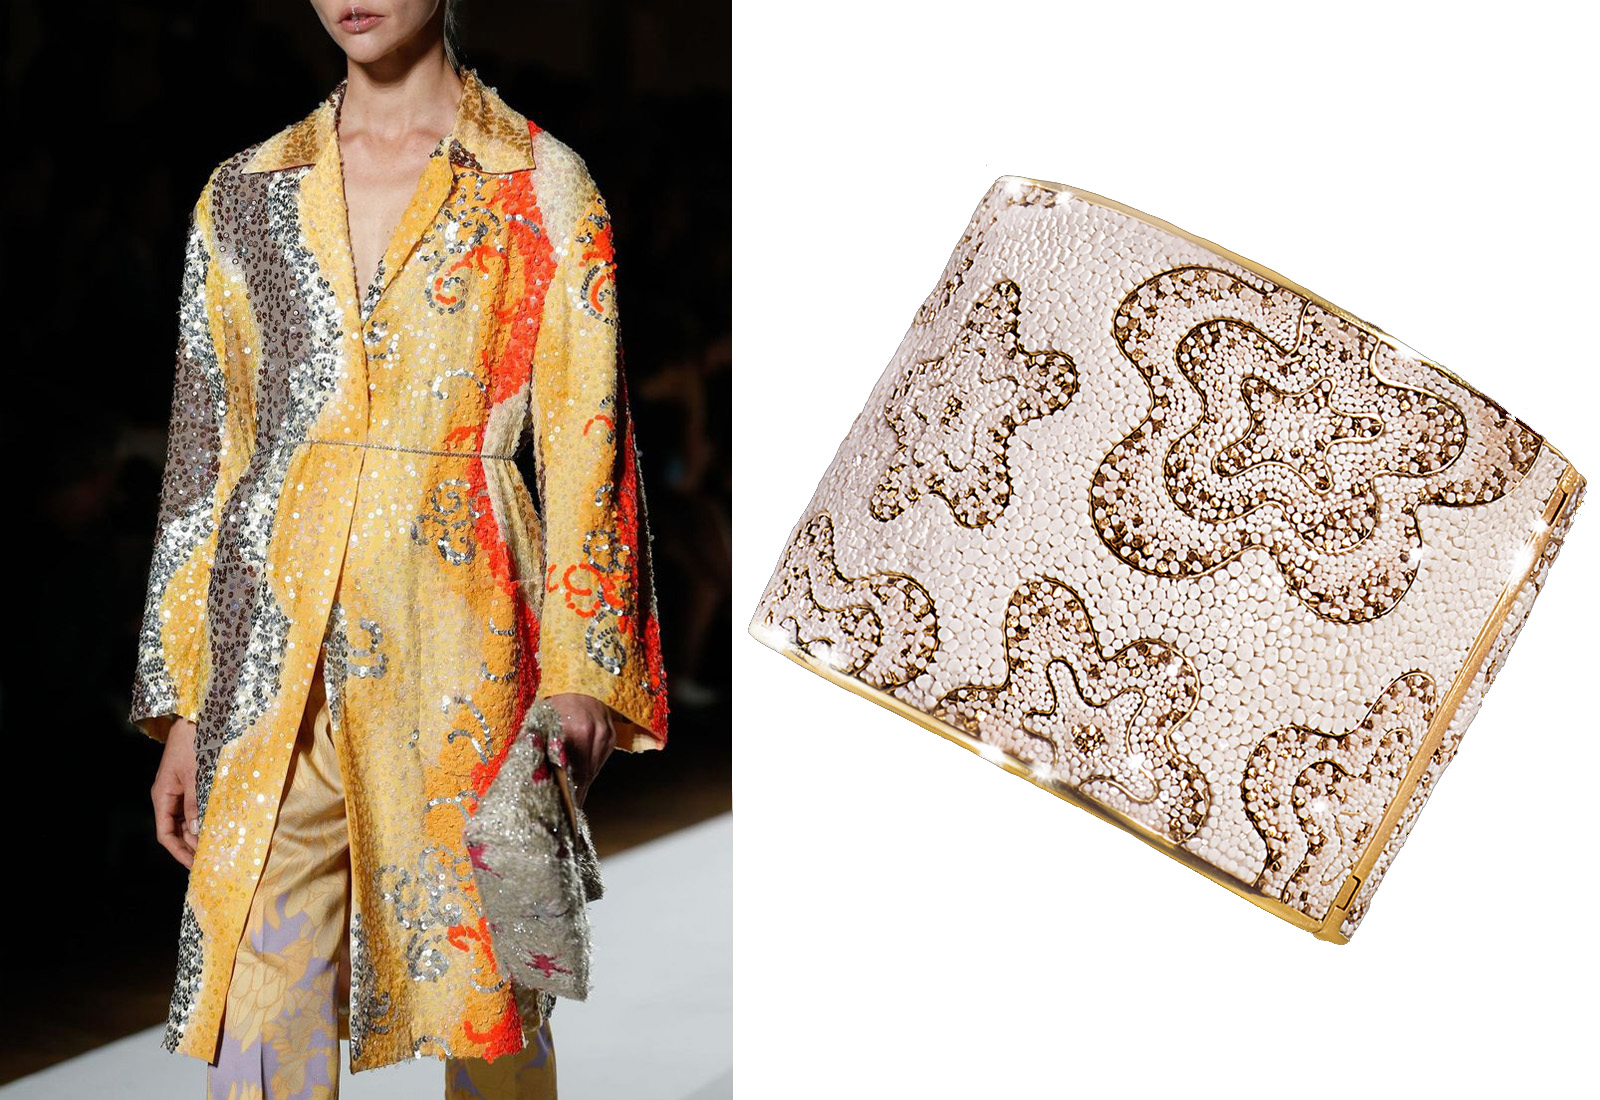 Dries Van Noten and SICIS 'Fiore' micromosaic cuff